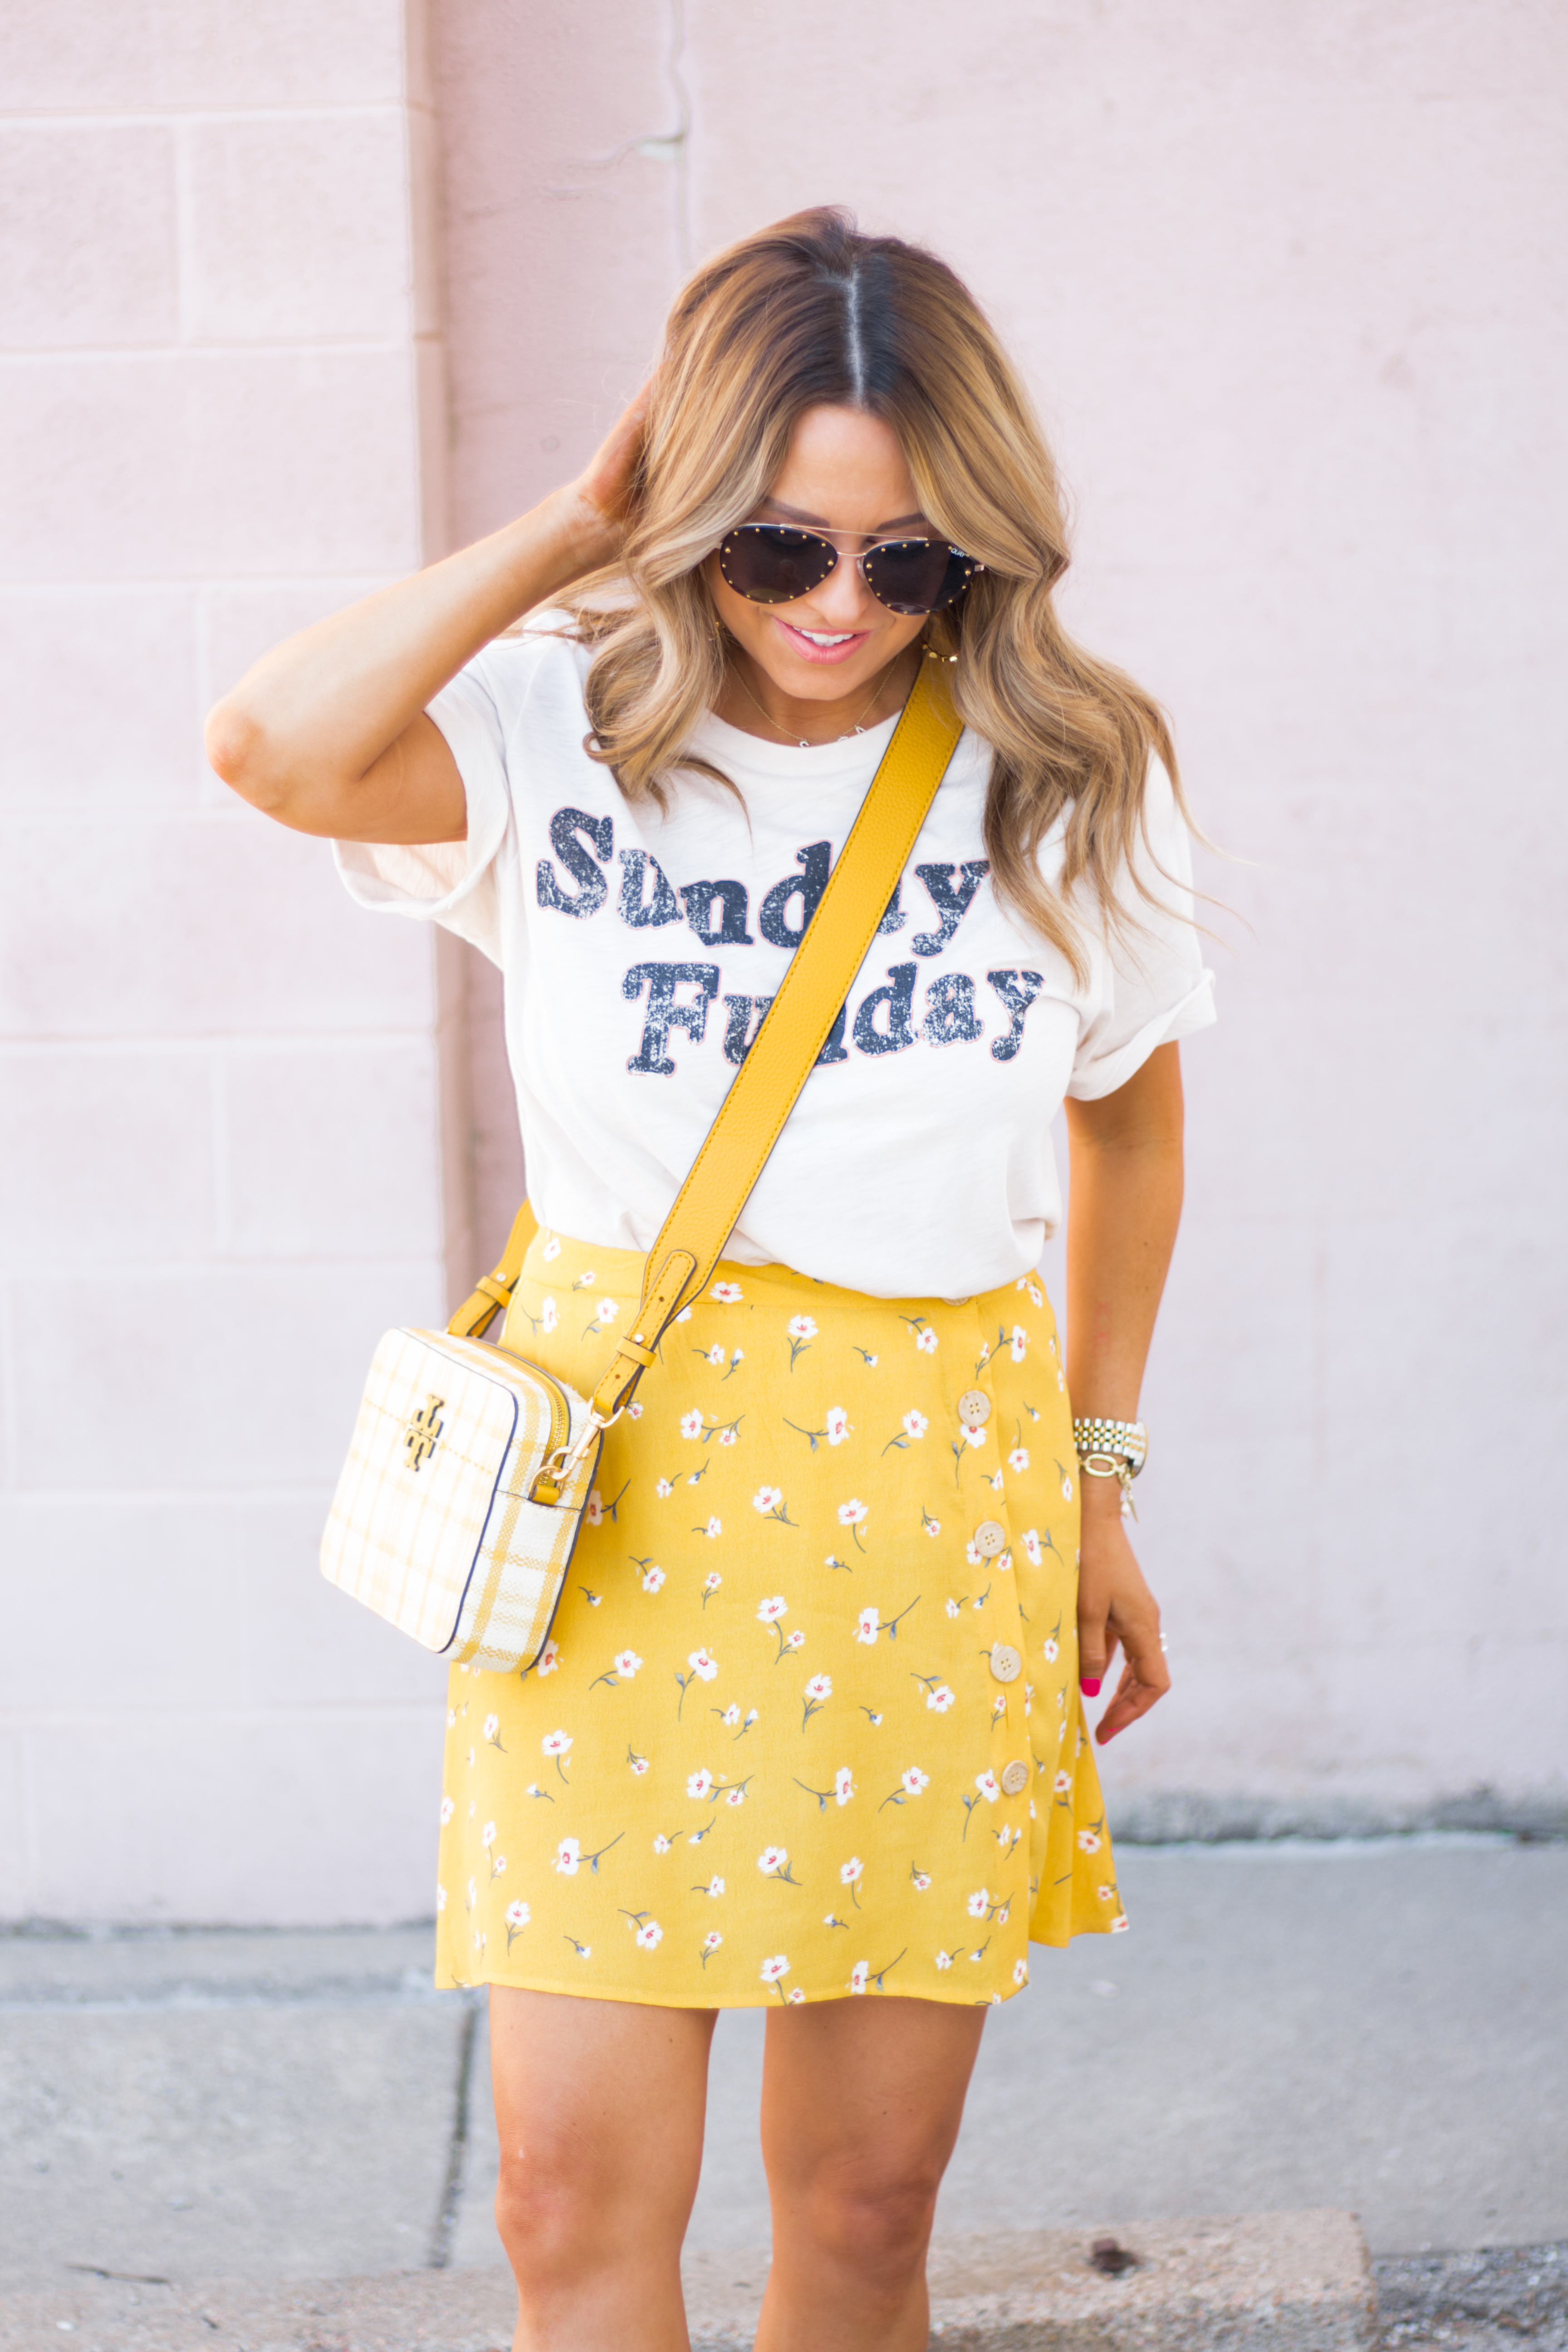 Sunday Funday-Graphic Tee-Floral Skirt-Mini Skirt-Spring Fashion-Spring Style-Tory Burch Purse-Quay Sunglasses-Tan Wedges-Espadrilles-Yellow-Colorful Style-Sabby Style-Women's Fashion-Omaha Blog-Omaha Blogger-11